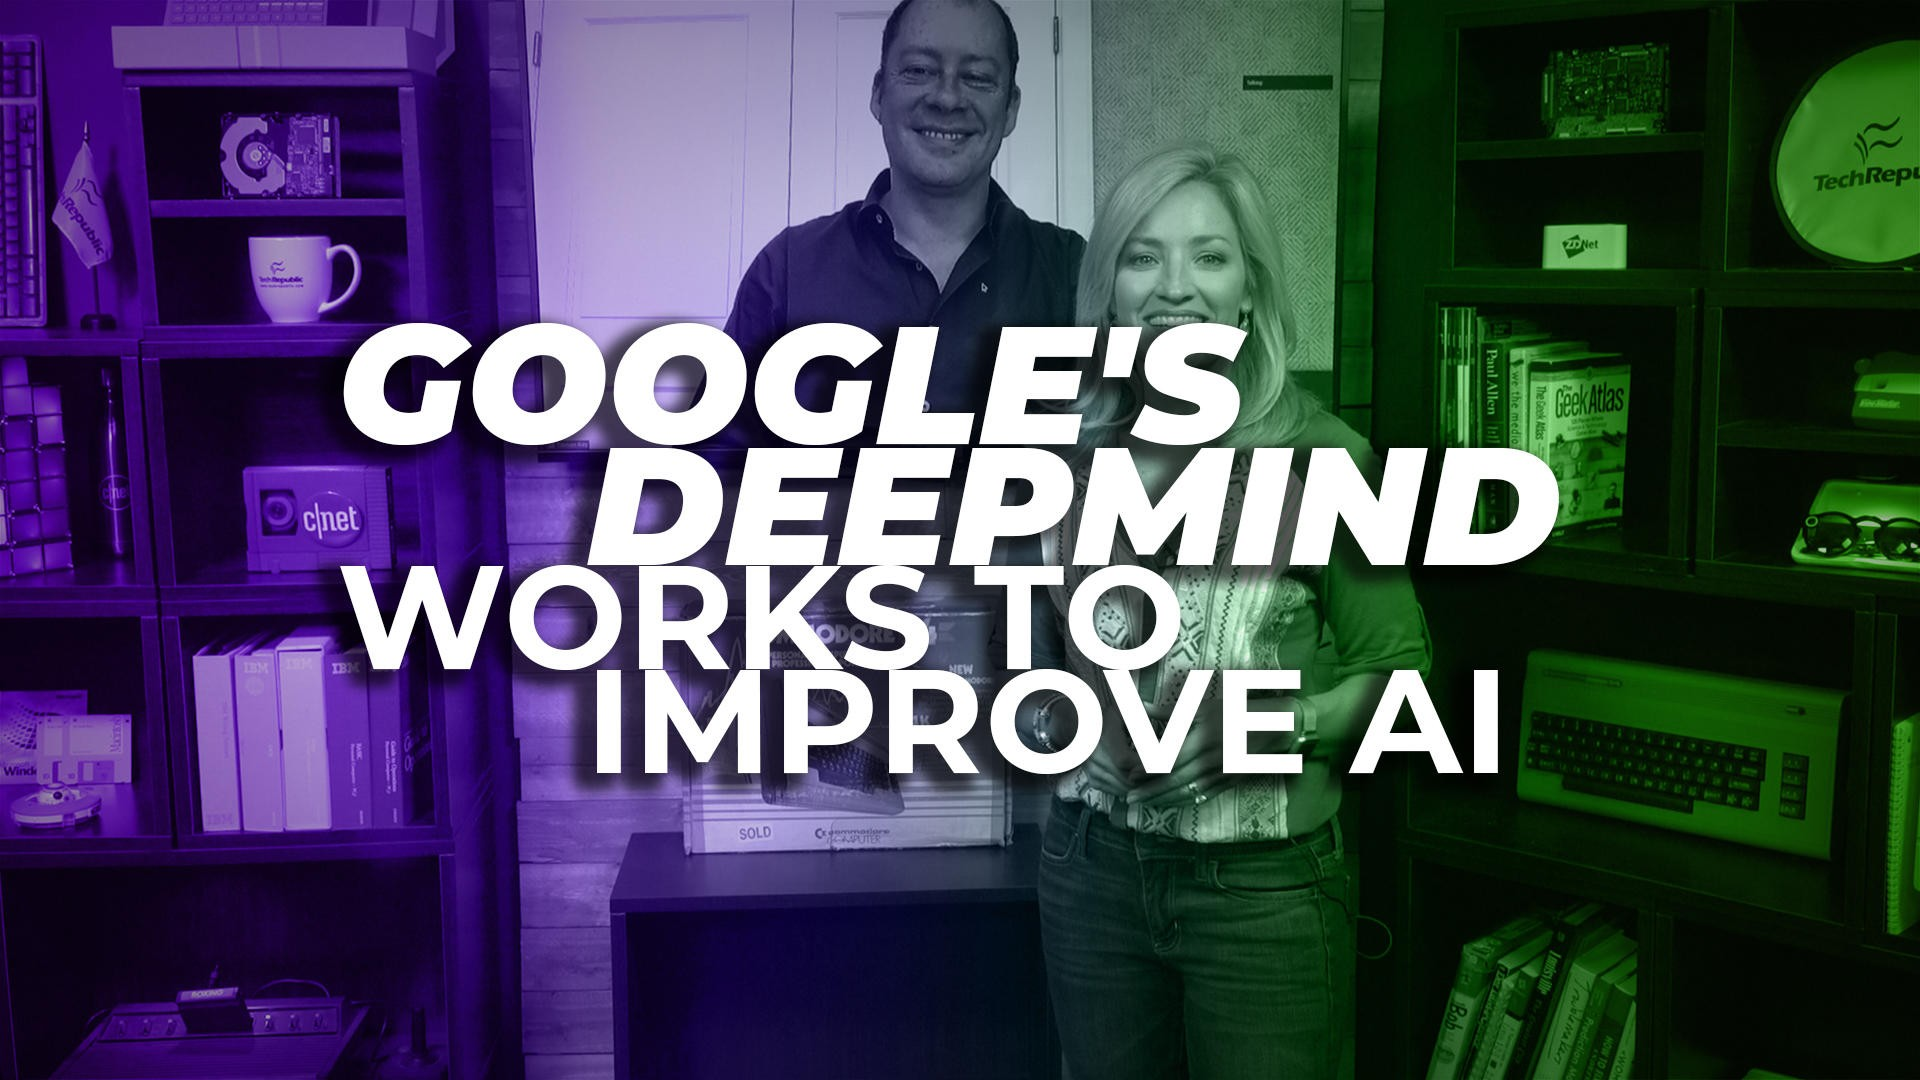 012 Thumb Google Deepmind Researchs Outstanding Research Papers 1920